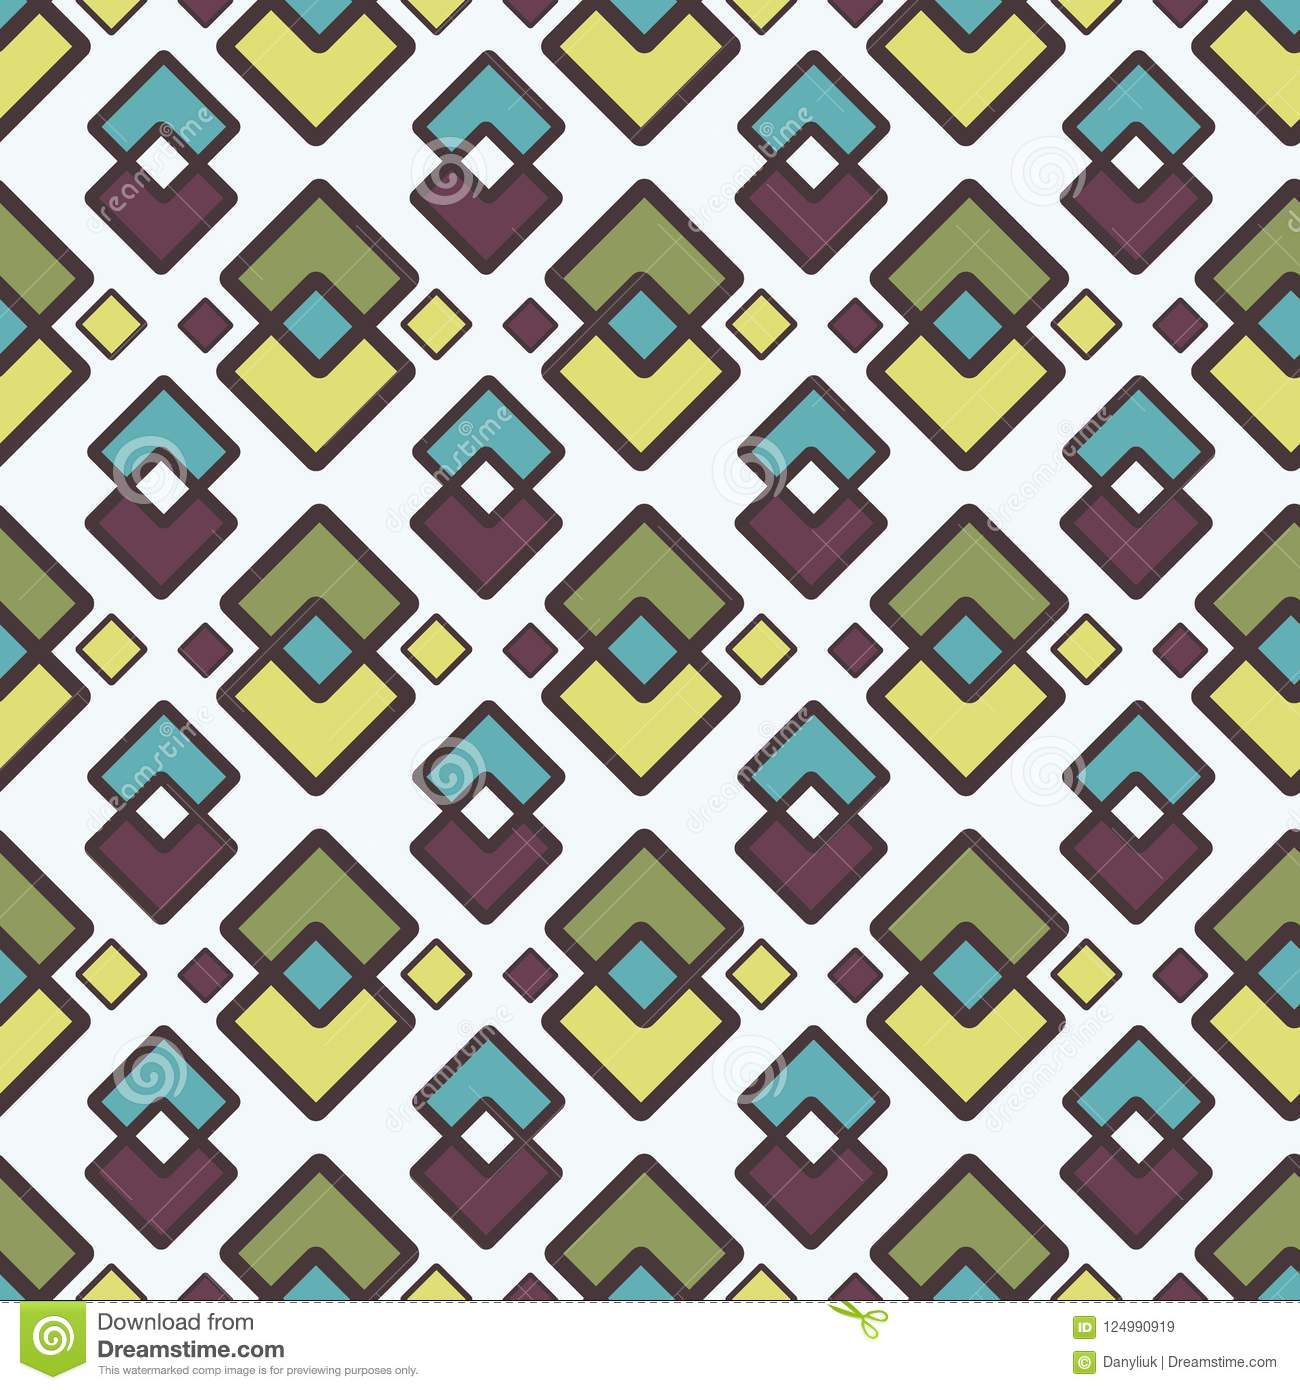 Square Abstract Geometric Pattern With Rhombuses Seamless